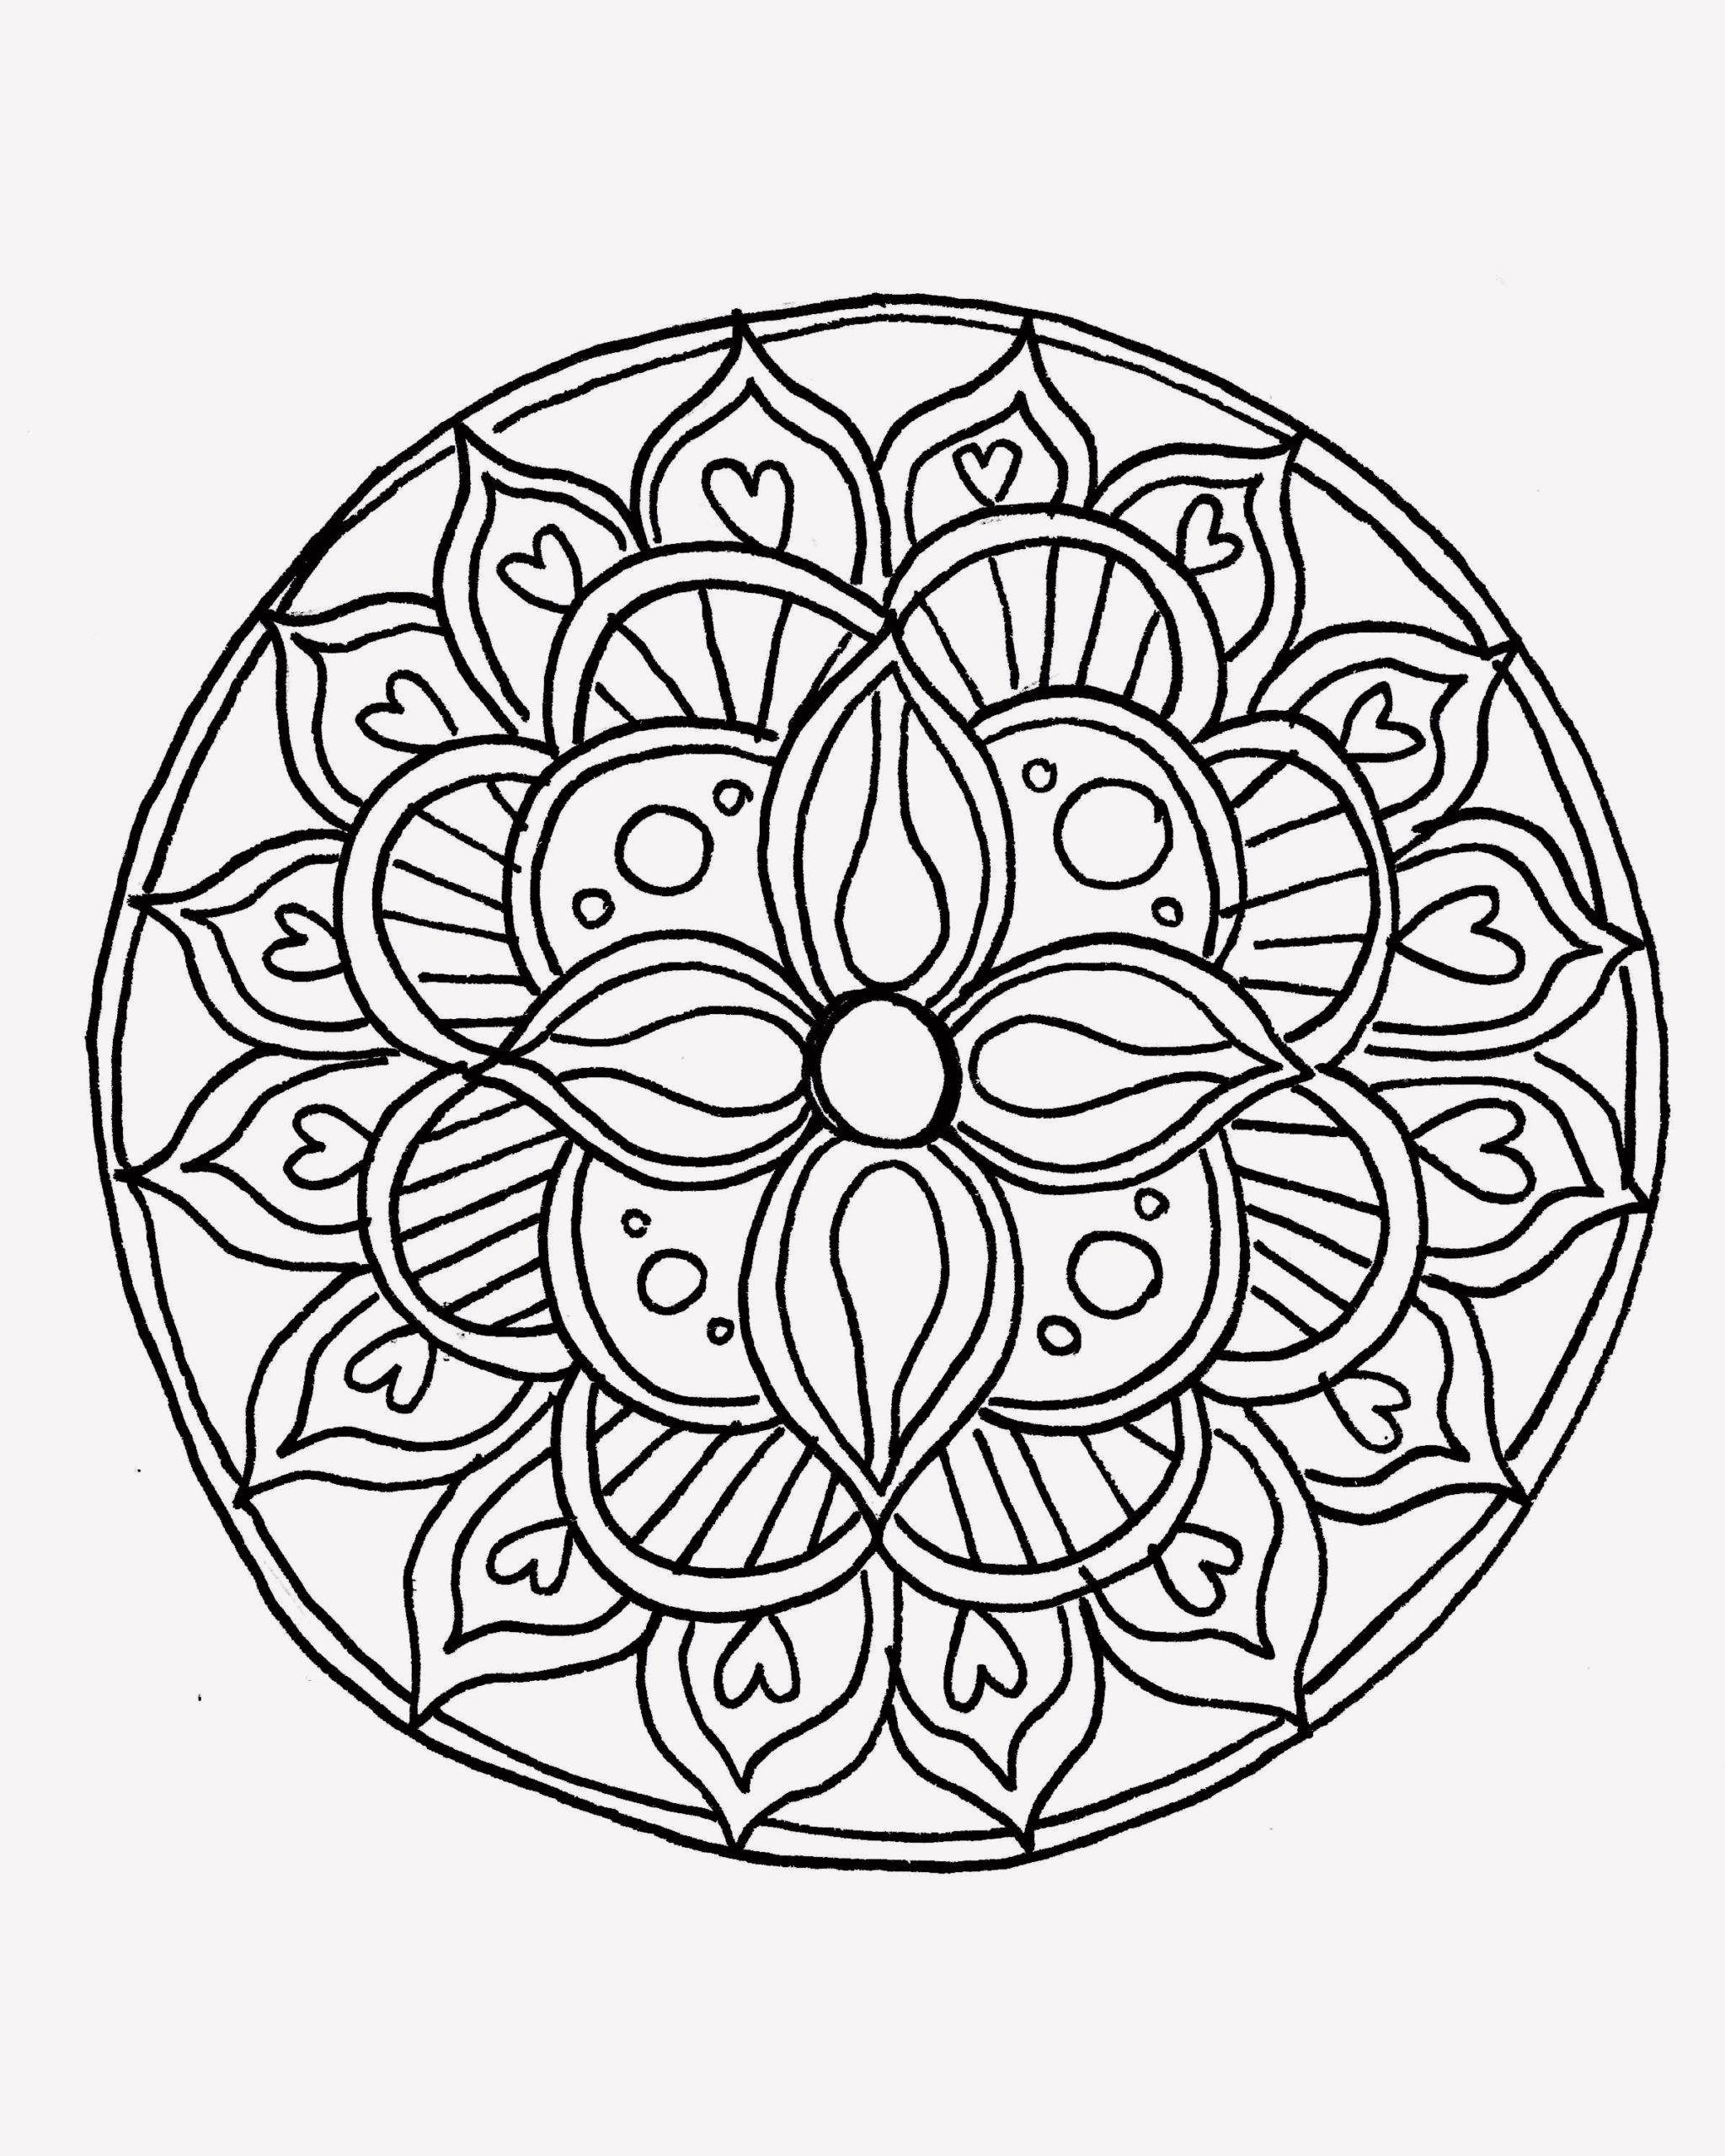 14 Printable Coloring Pages For Adults Easy Mandala Coloring Pages Owl Coloring Pages Cute Coloring Pages